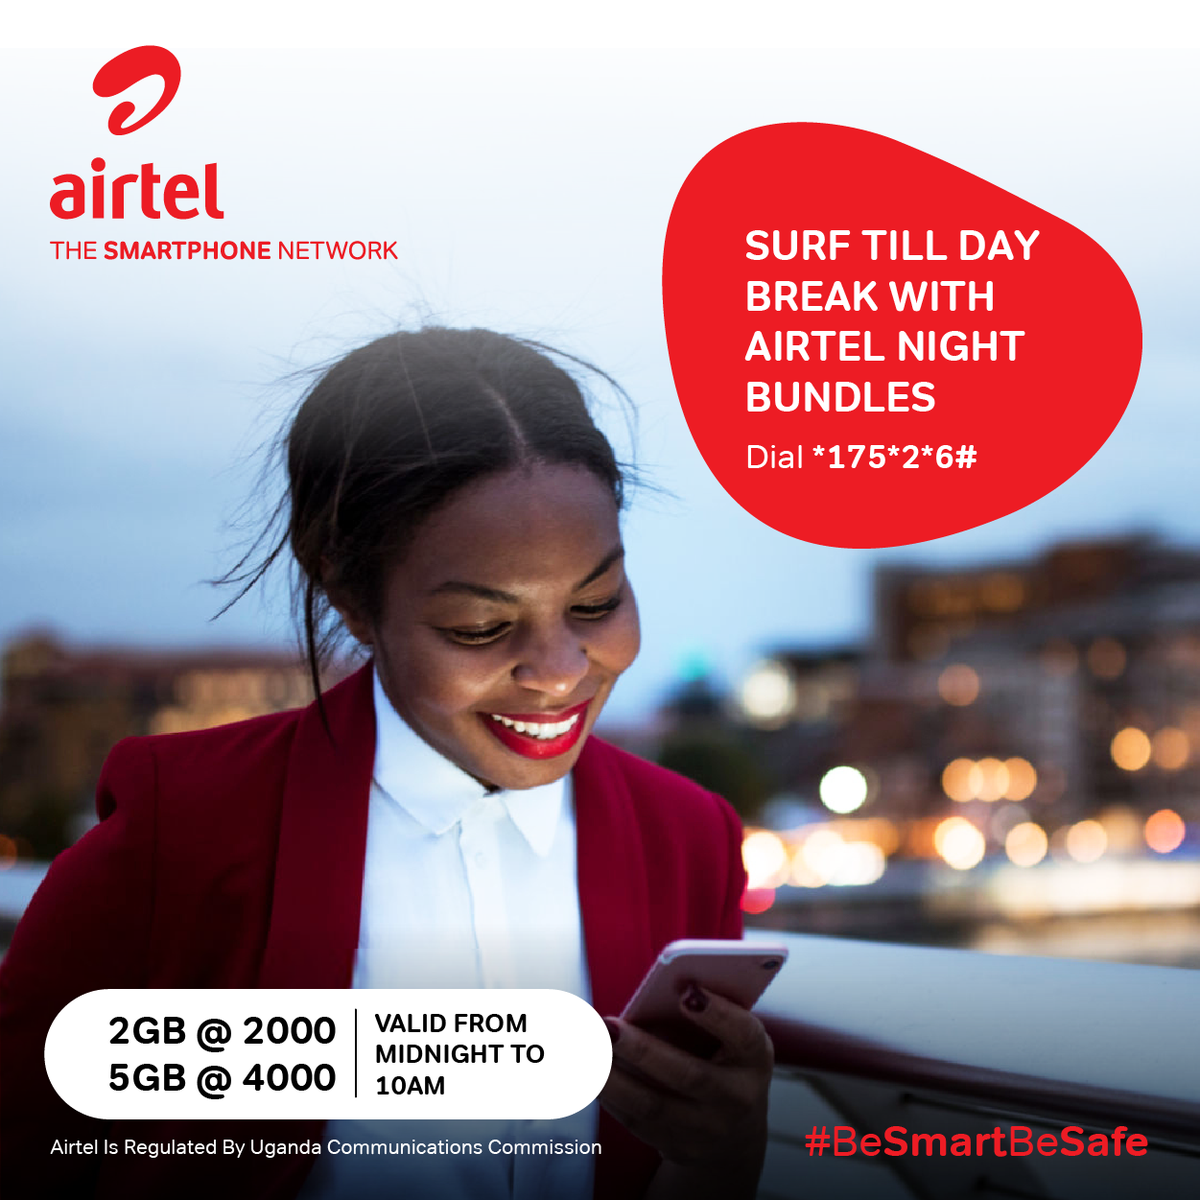 Keep the fun times all night till day break with the reloaded Airtel Simply dial *175*2*6# to get 2GB at UGX 2,000 or 5GB at UGX 4,000 valid from midnight to 10am the next day. #BeSmartBeSafe